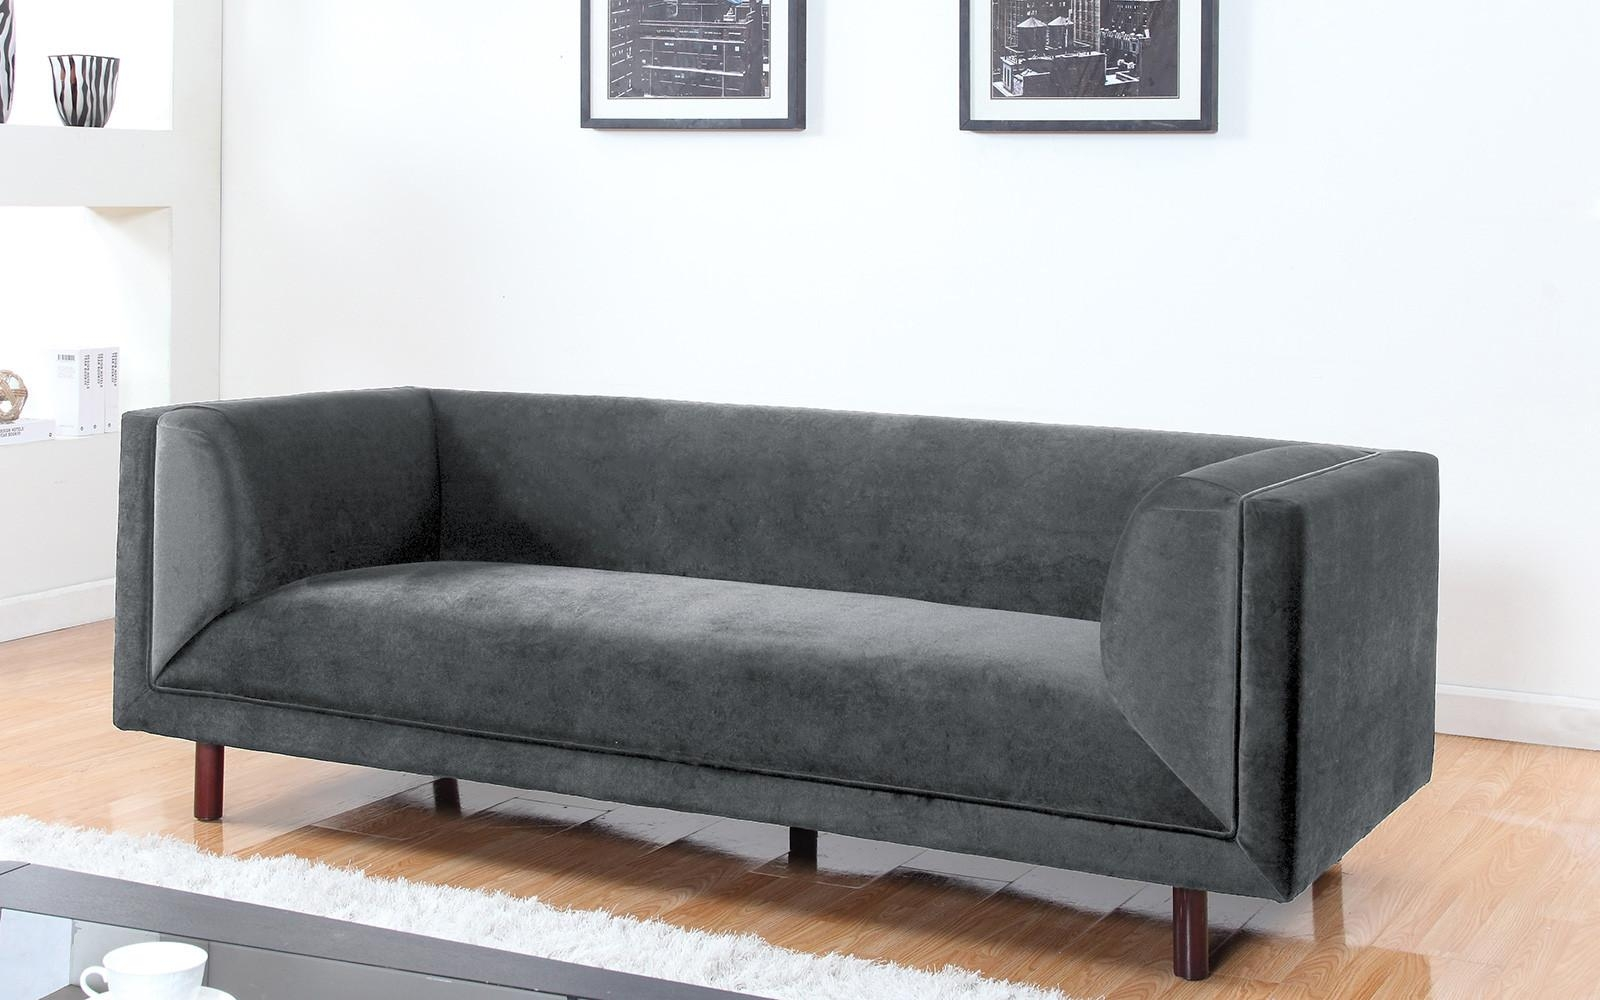 Modern Contemporary Large 3 Seater Velvet Sofa – Walmart Throughout Modern 3 Seater Sofas (Image 16 of 20)